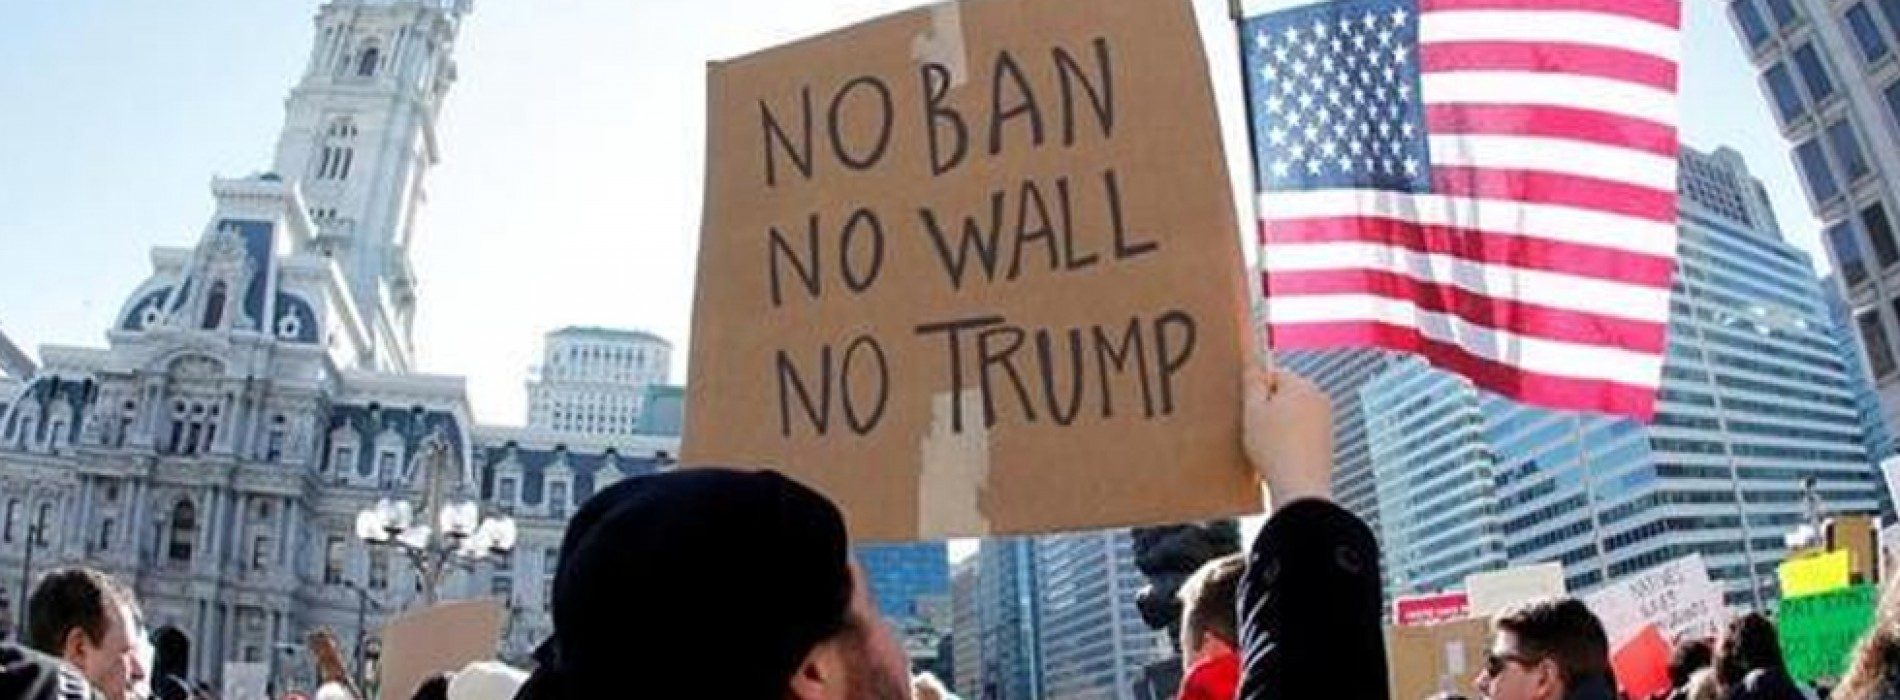 Trump-style travel ban finds fans in Europe says Poll